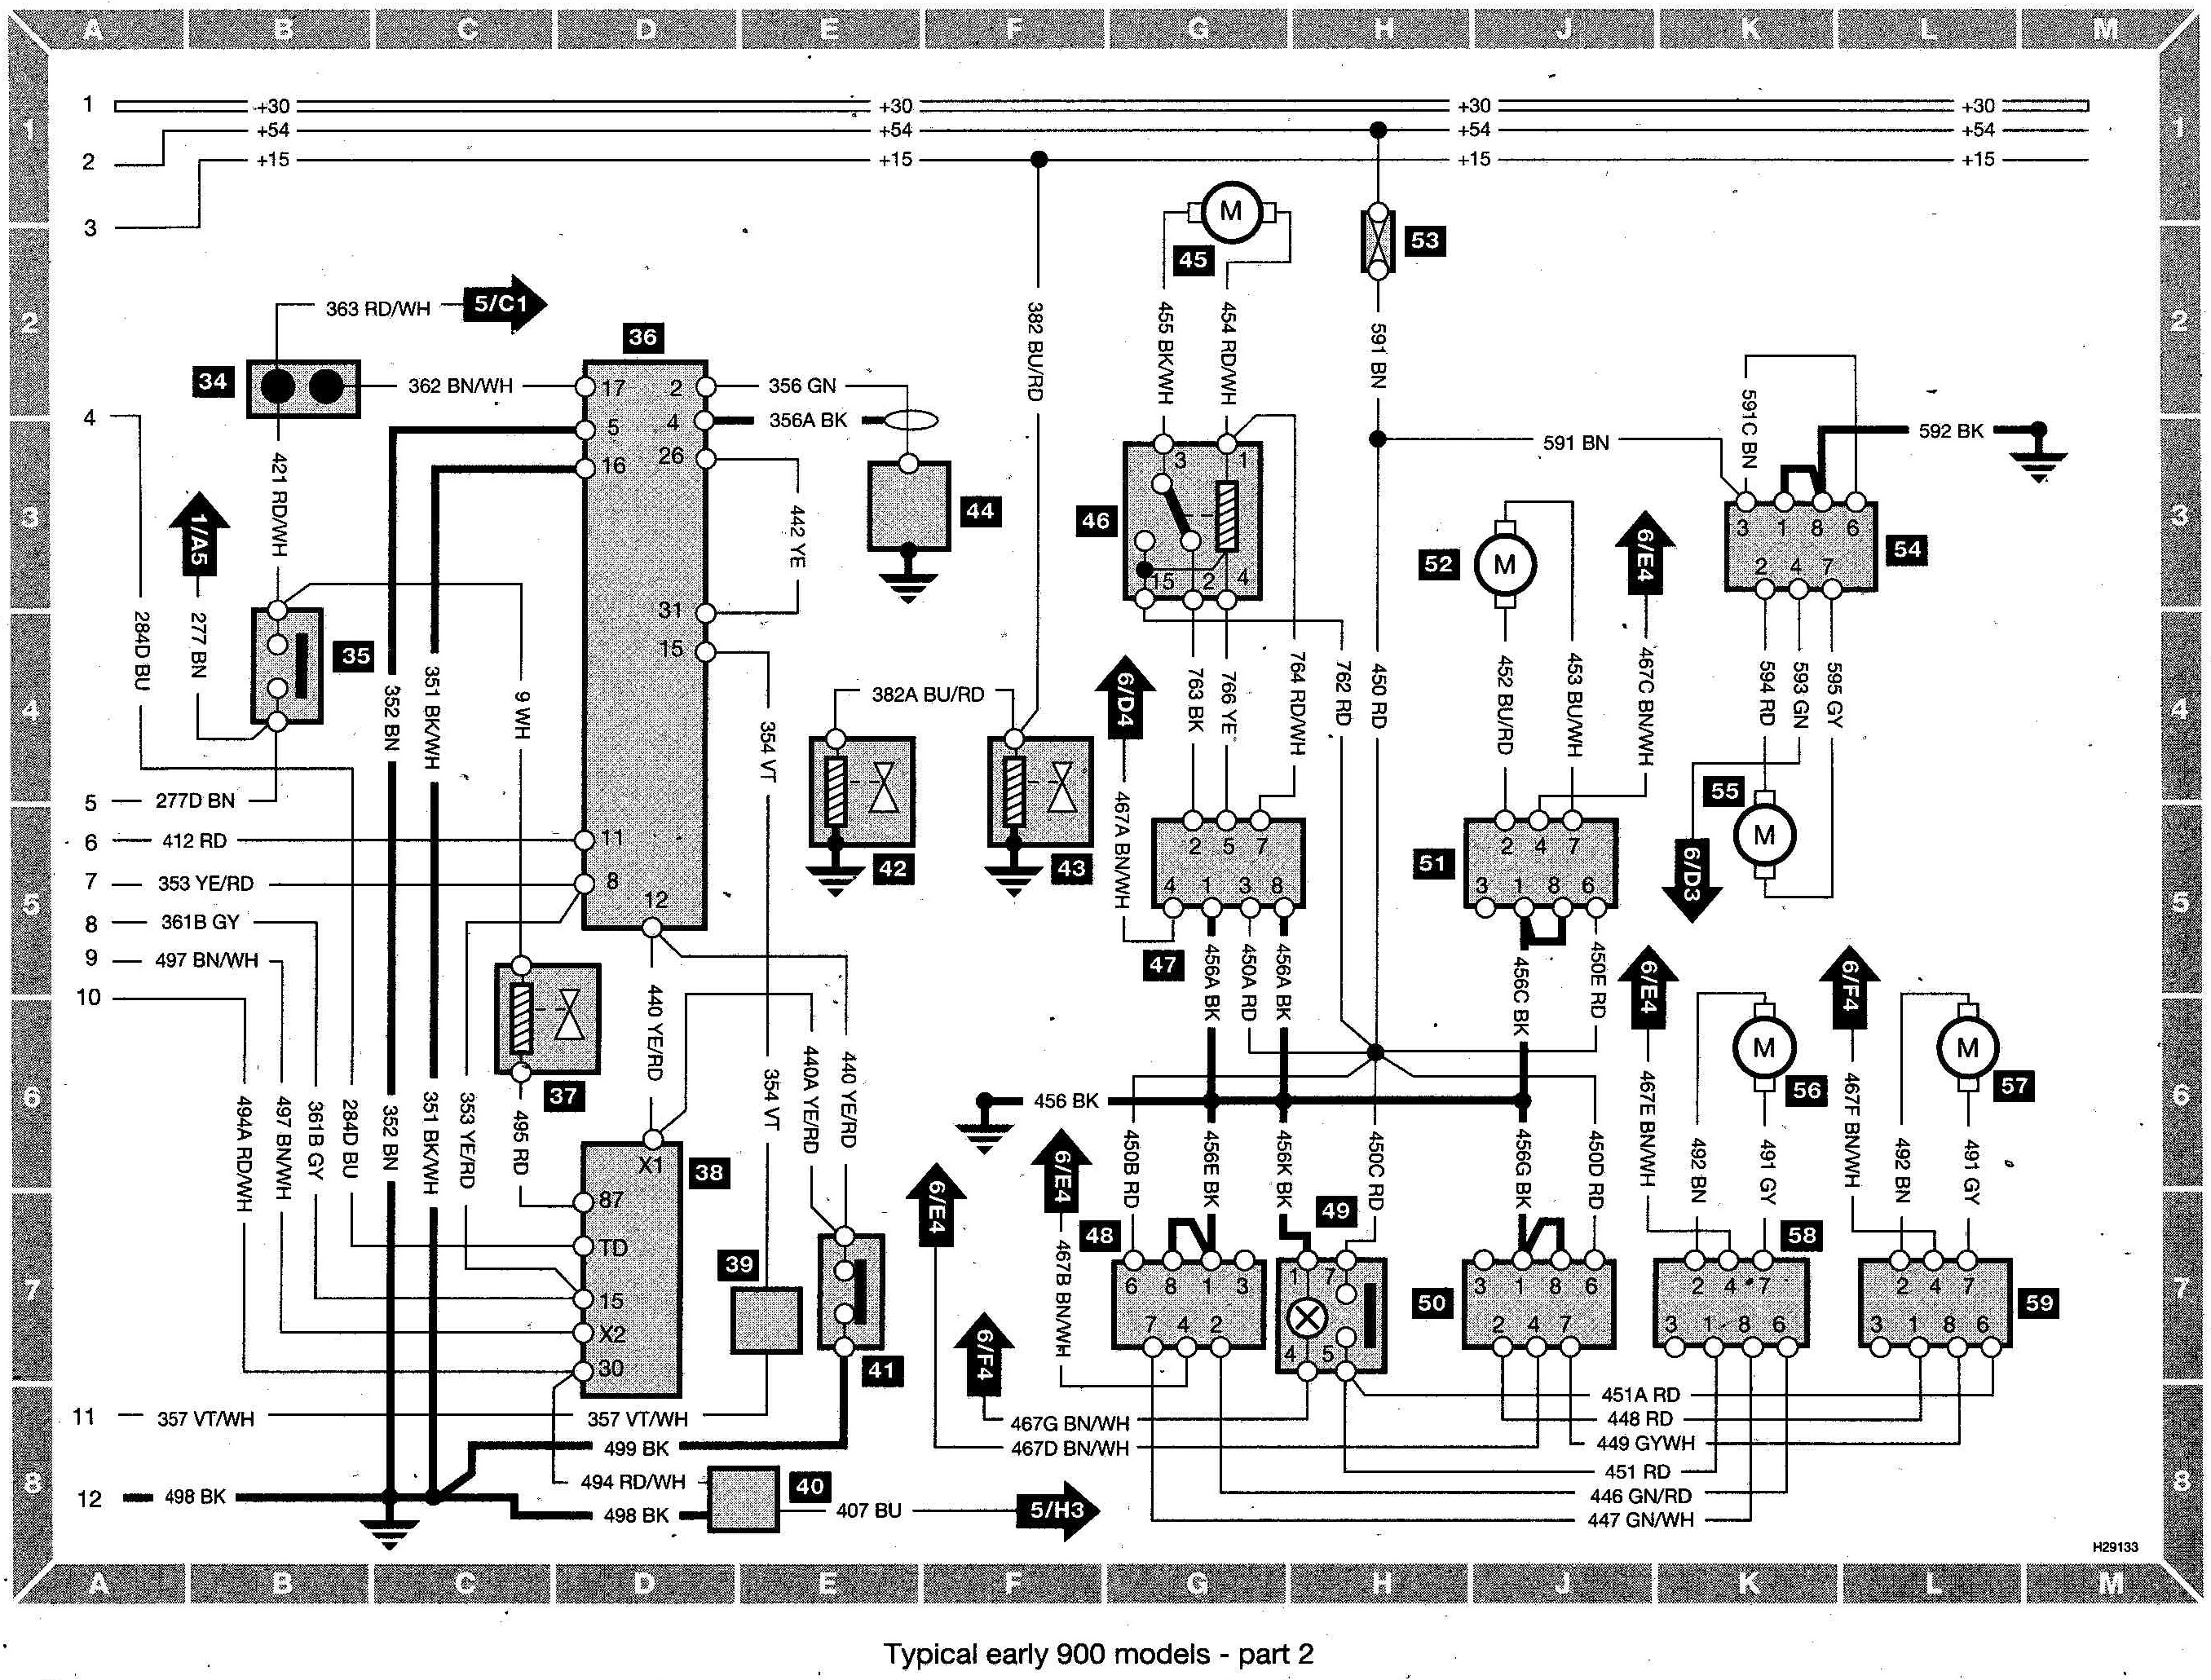 saab 900 turbo wiring diagram 1992 saab 900 turbo engine diagram